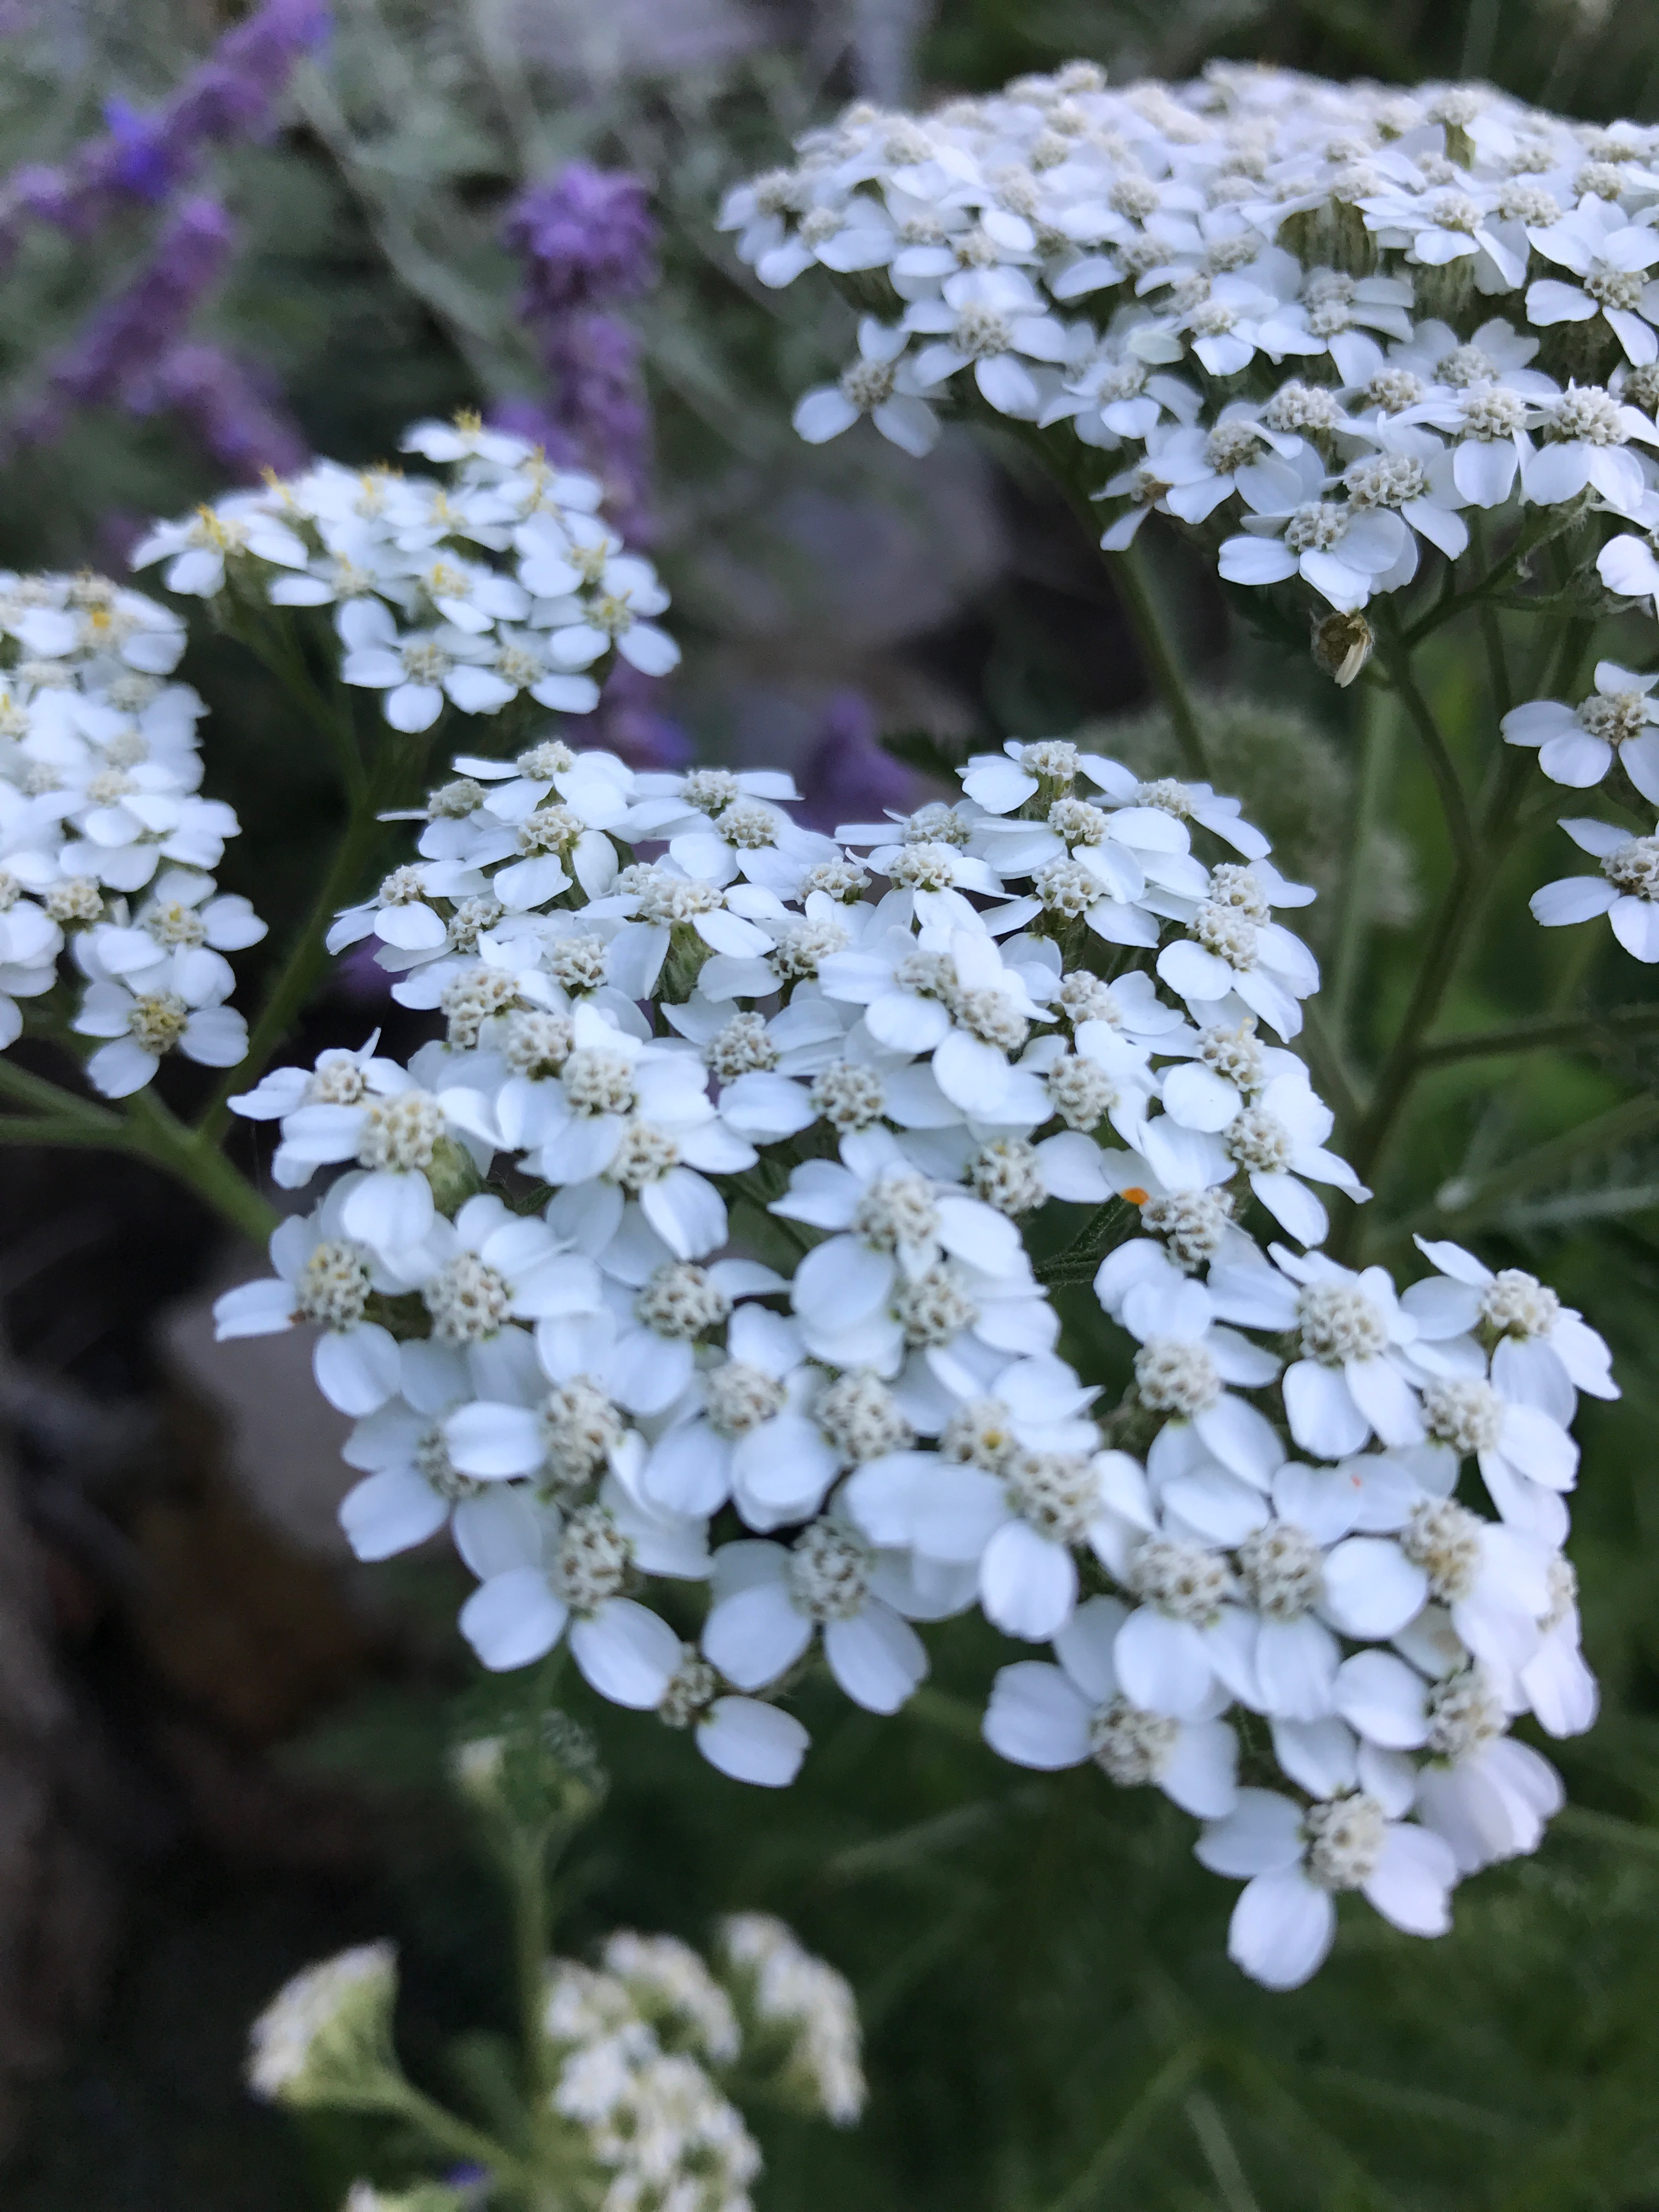 Yarrow, one of the fall-blooming plants helping insects of all kinds get ready for winter